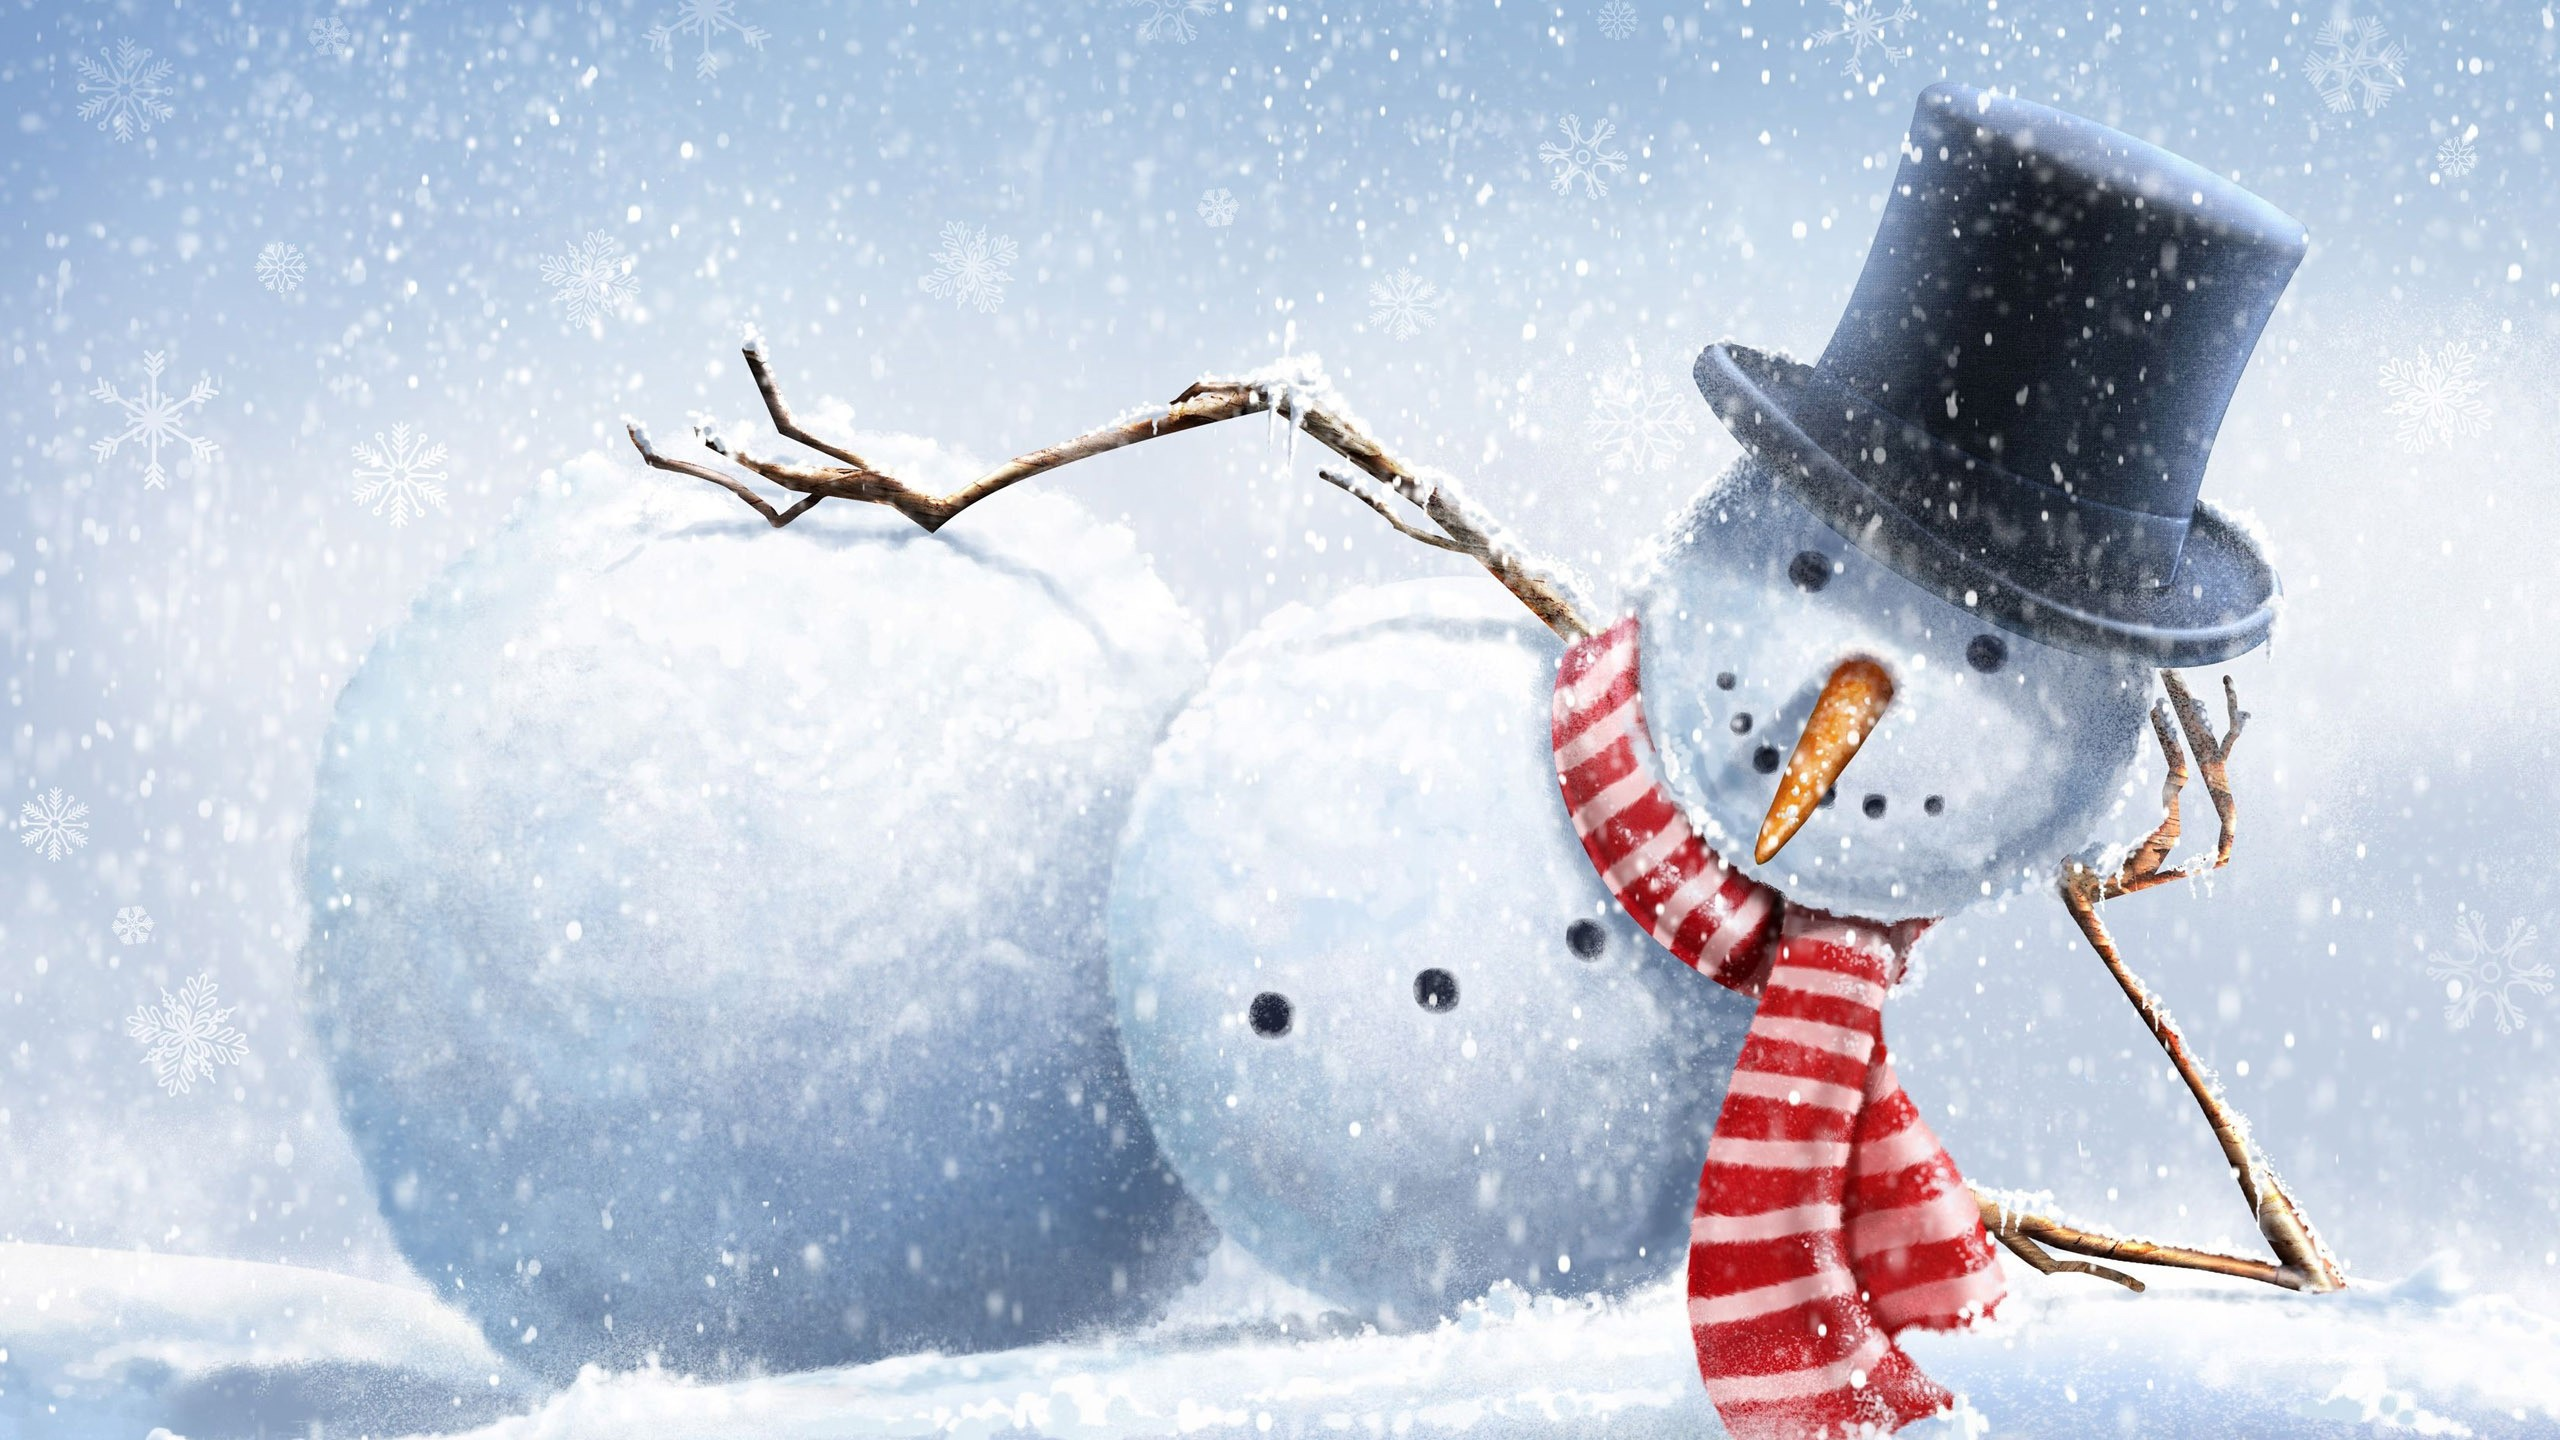 drawing snow winter snowman top hats branch carrots 2560x1440